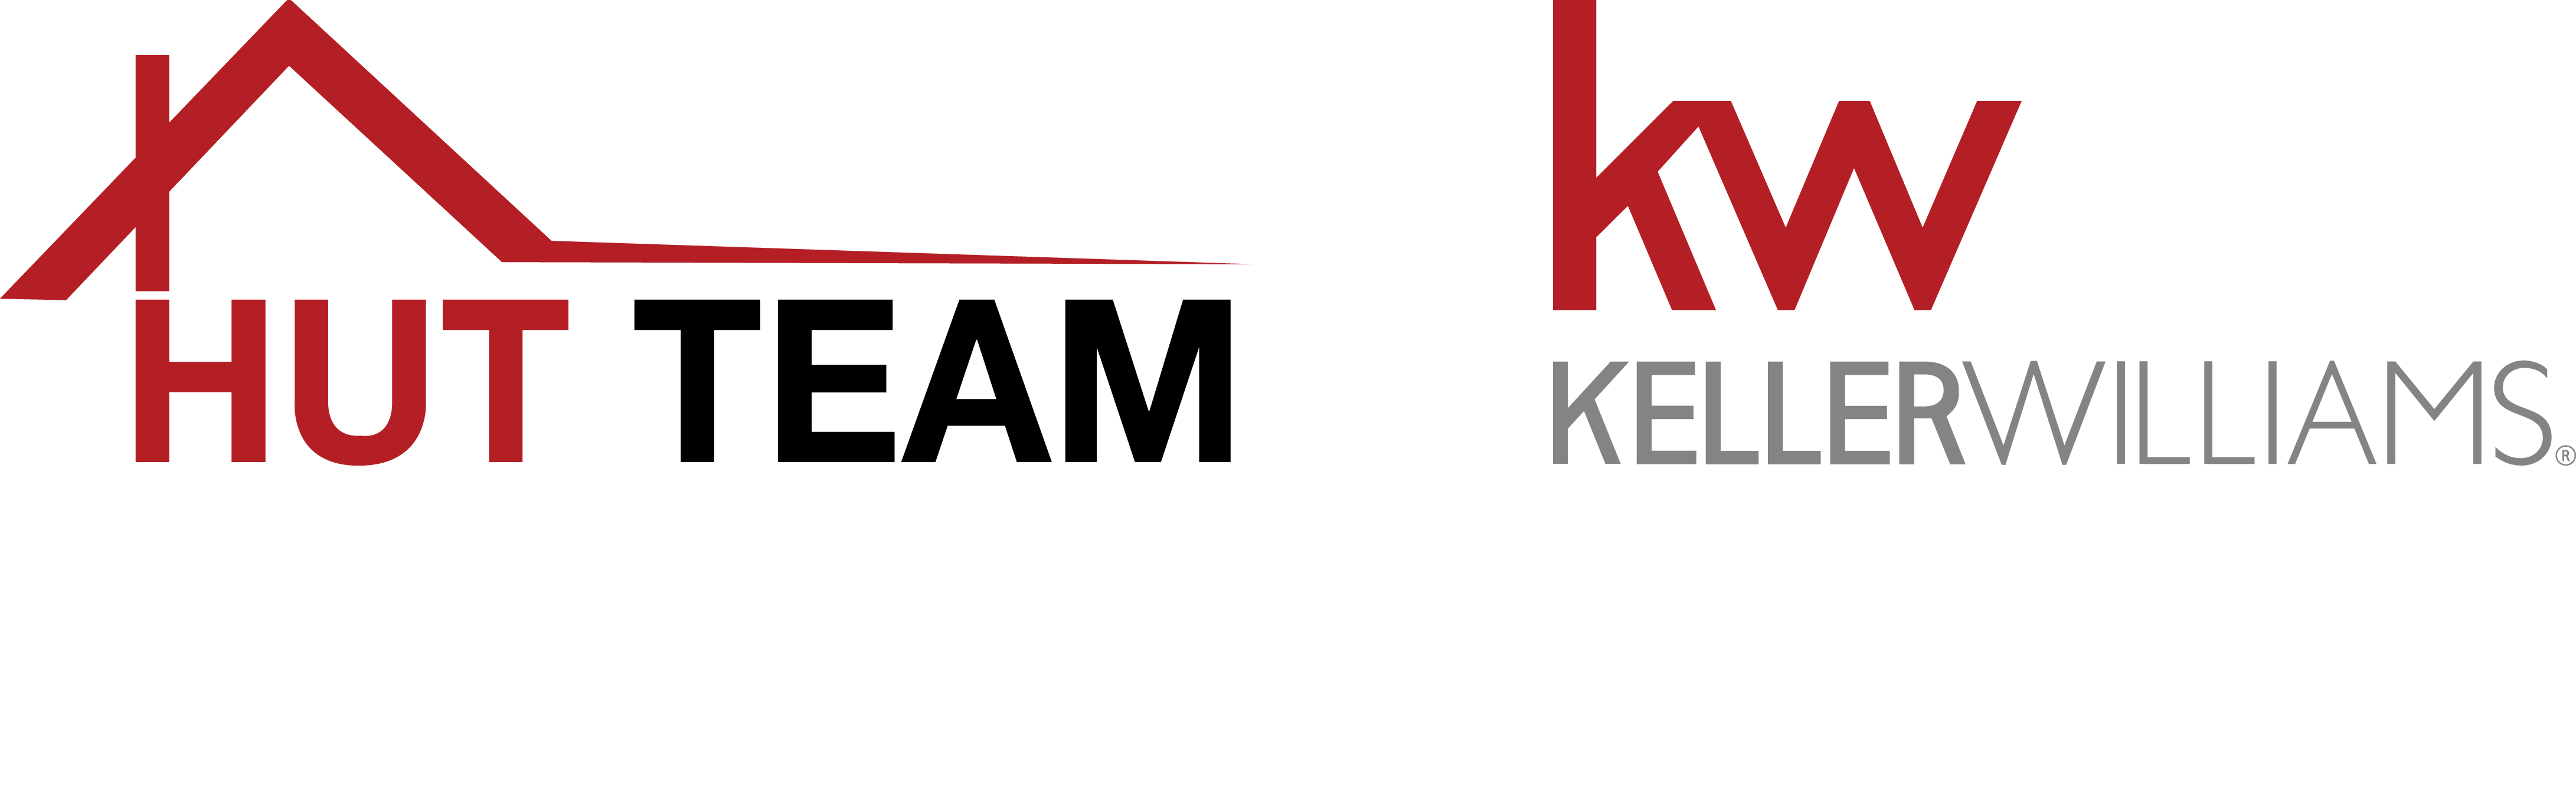 HUT TEAM @ KELLER WILLIAMS REALTY LOGO